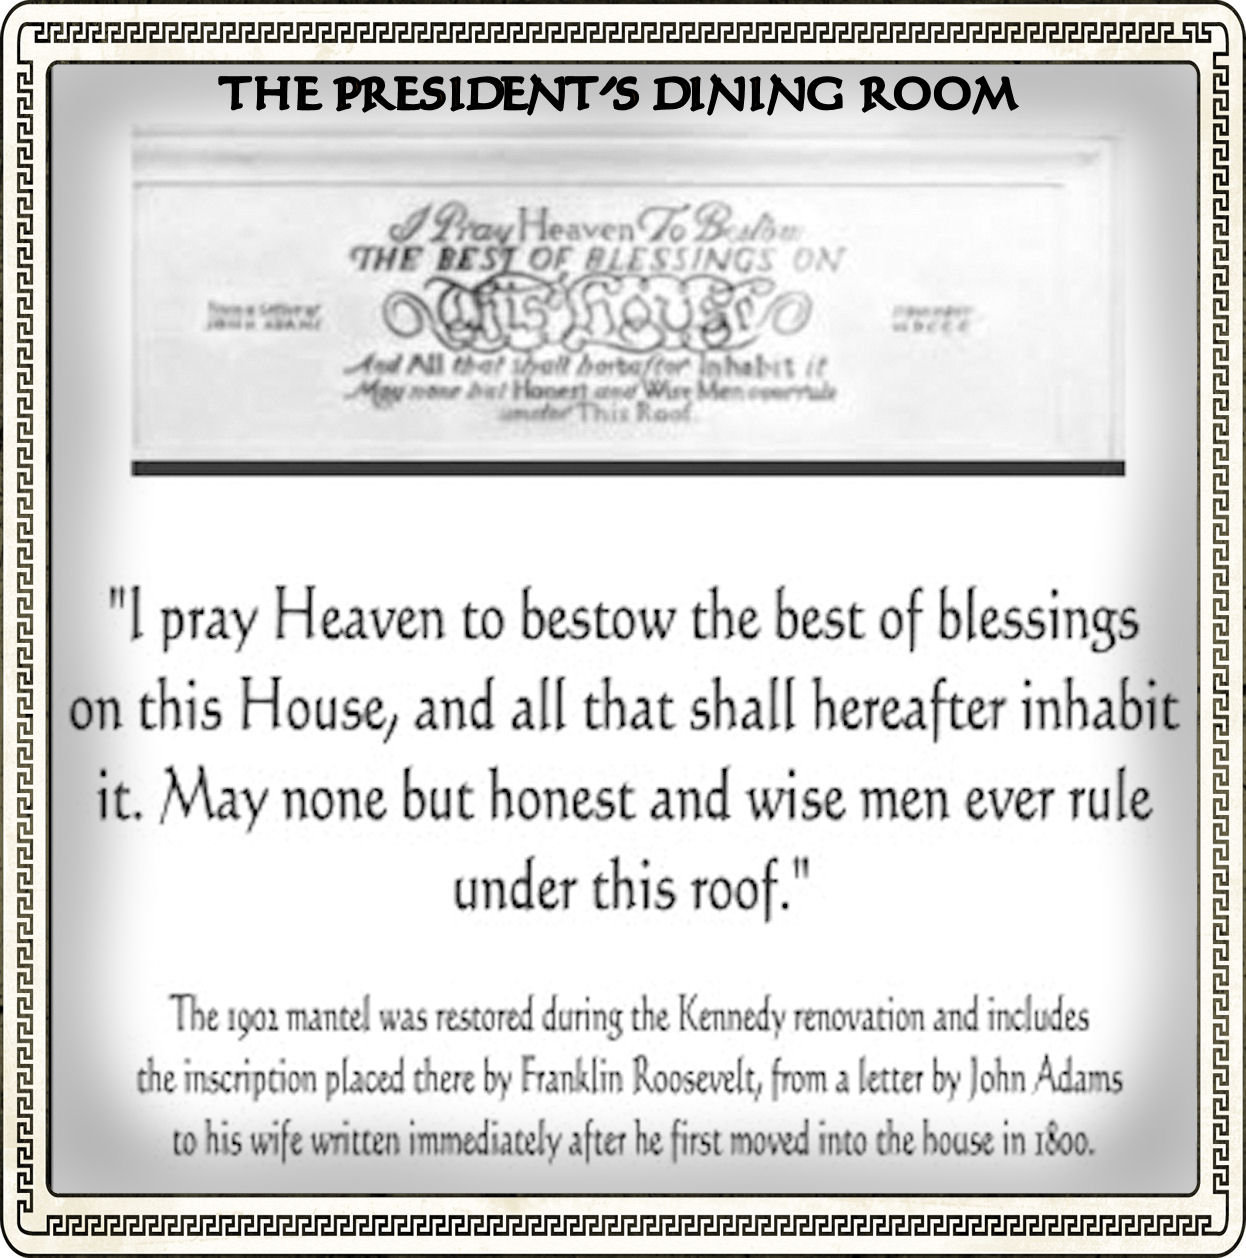 As The Nation Grew So Did Invitation List To Official Functions At White House Room That Was